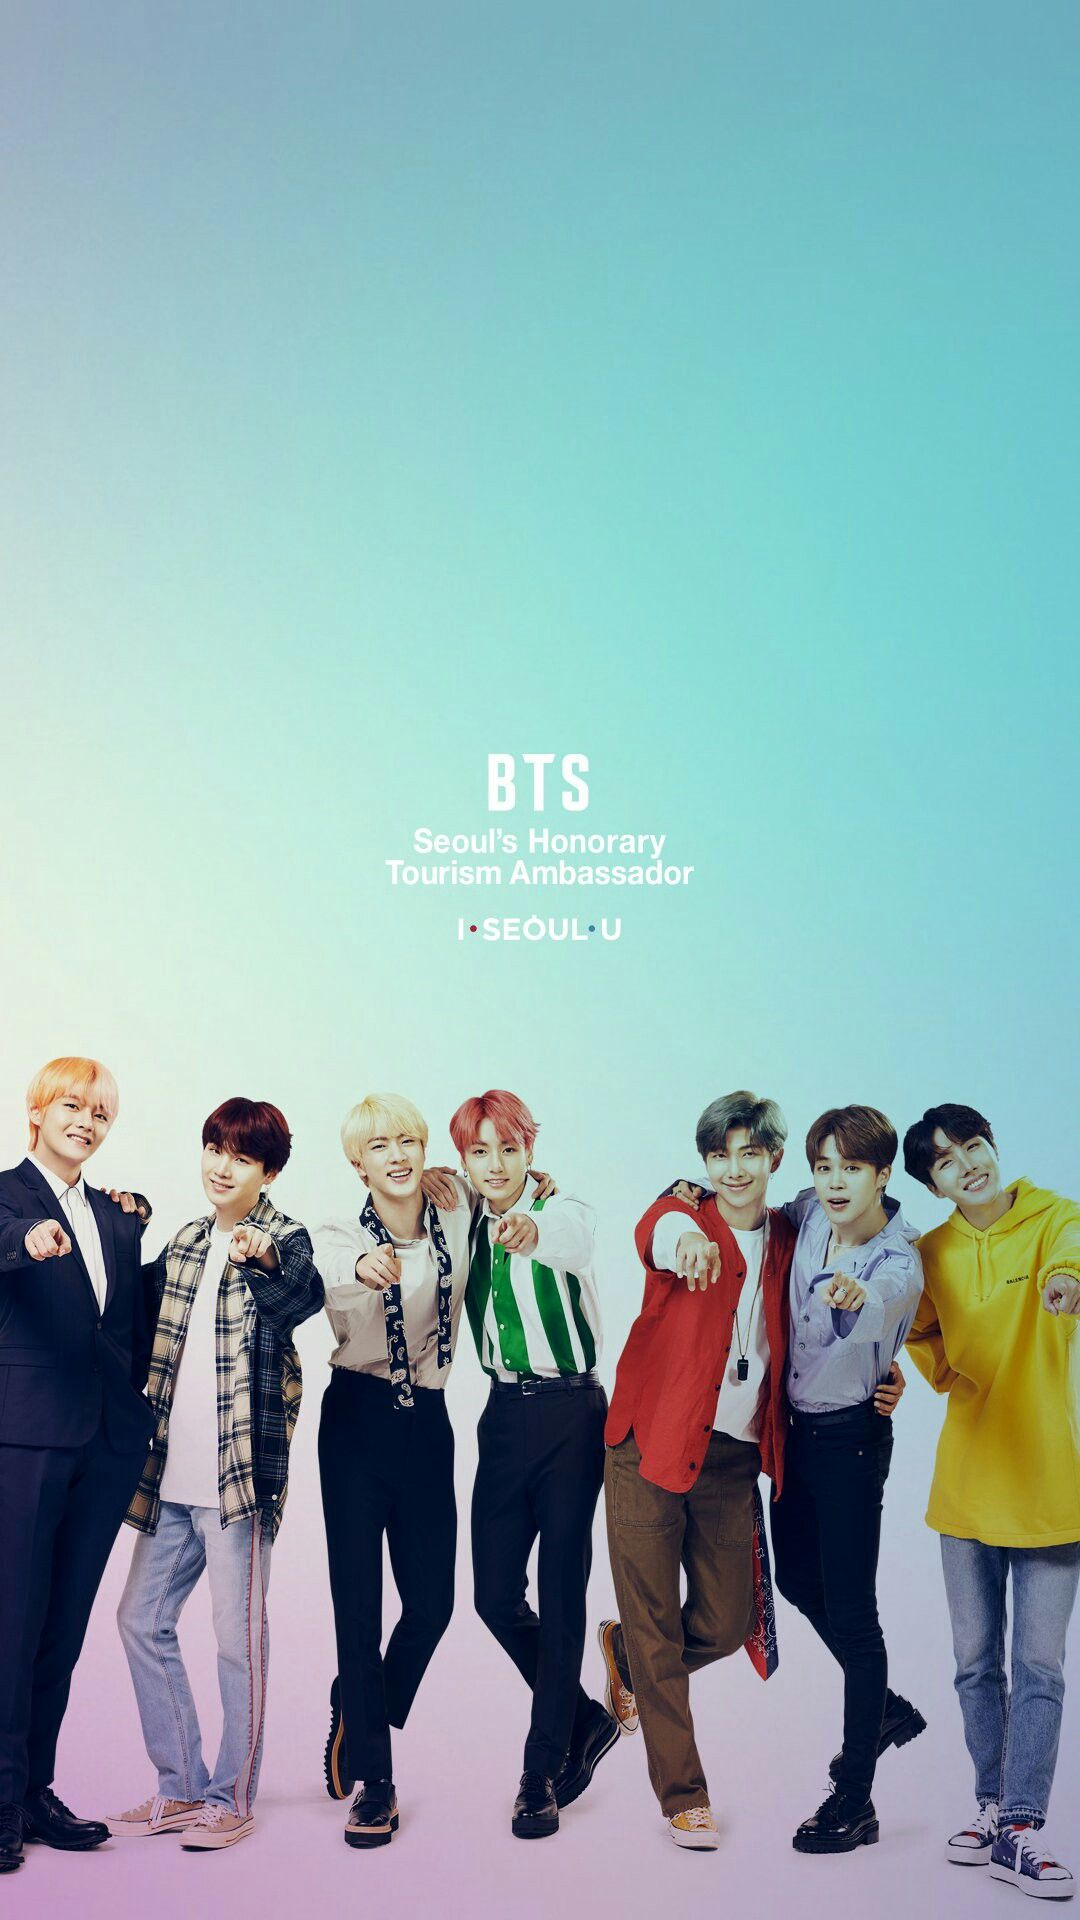 Bts moving wallpaper iphone